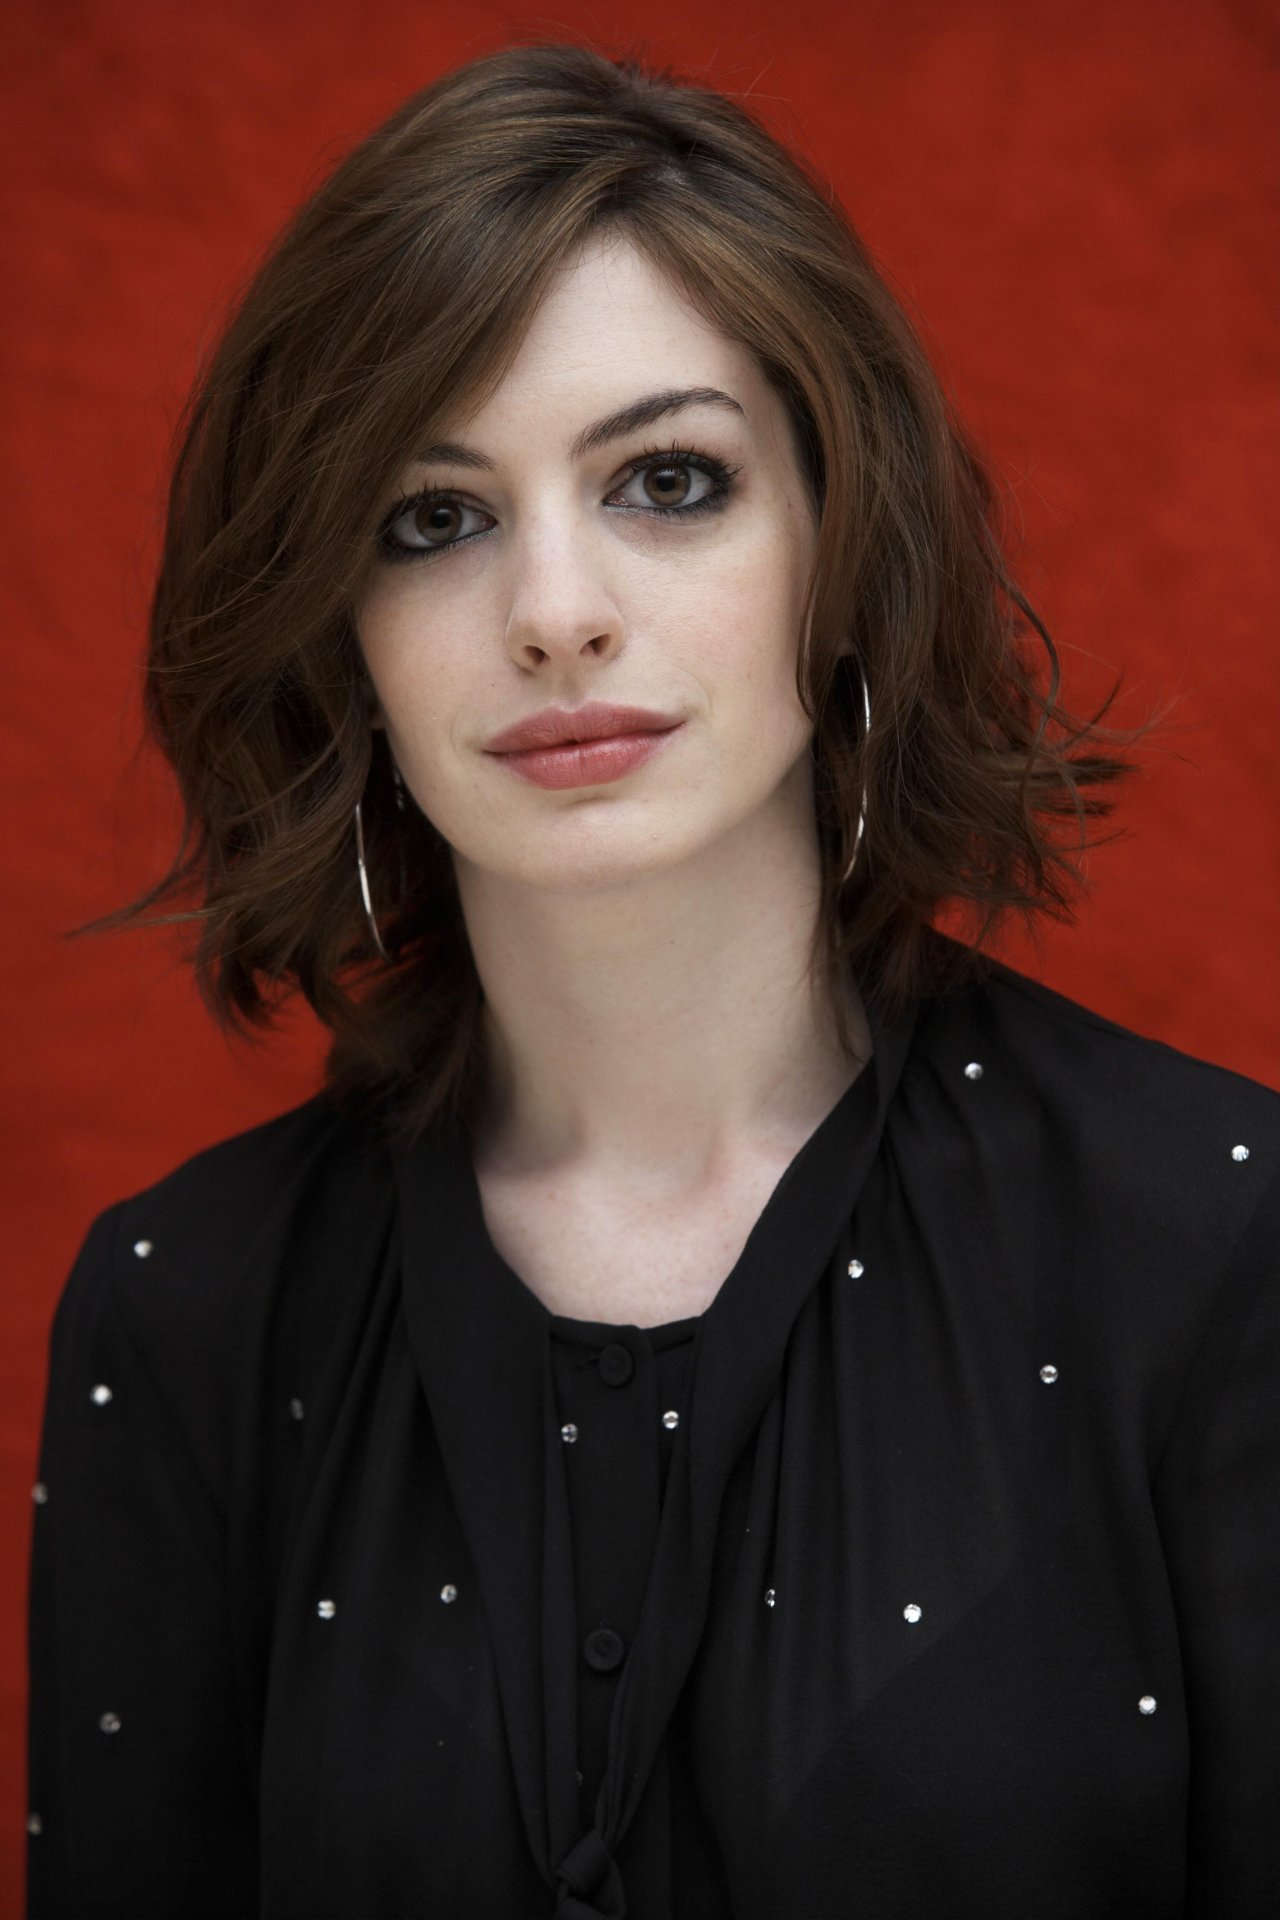 Anne Hathaway leaked wallpapers